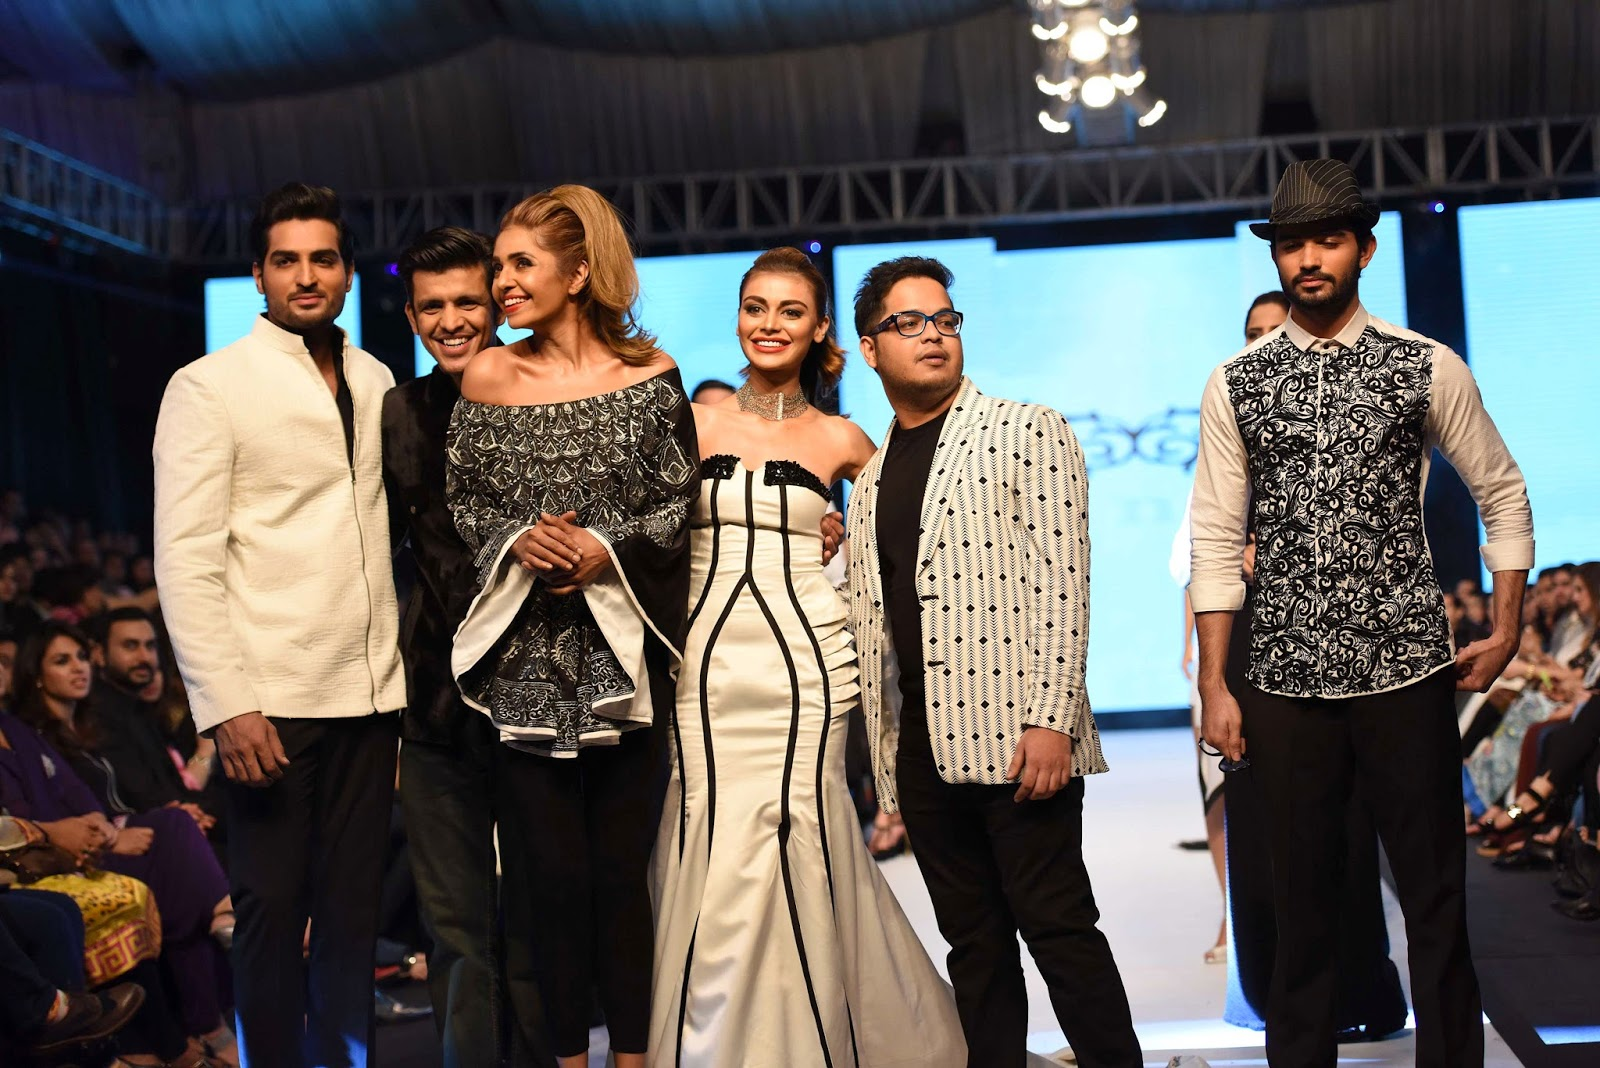 deepak and fahad at the end of the show with the models